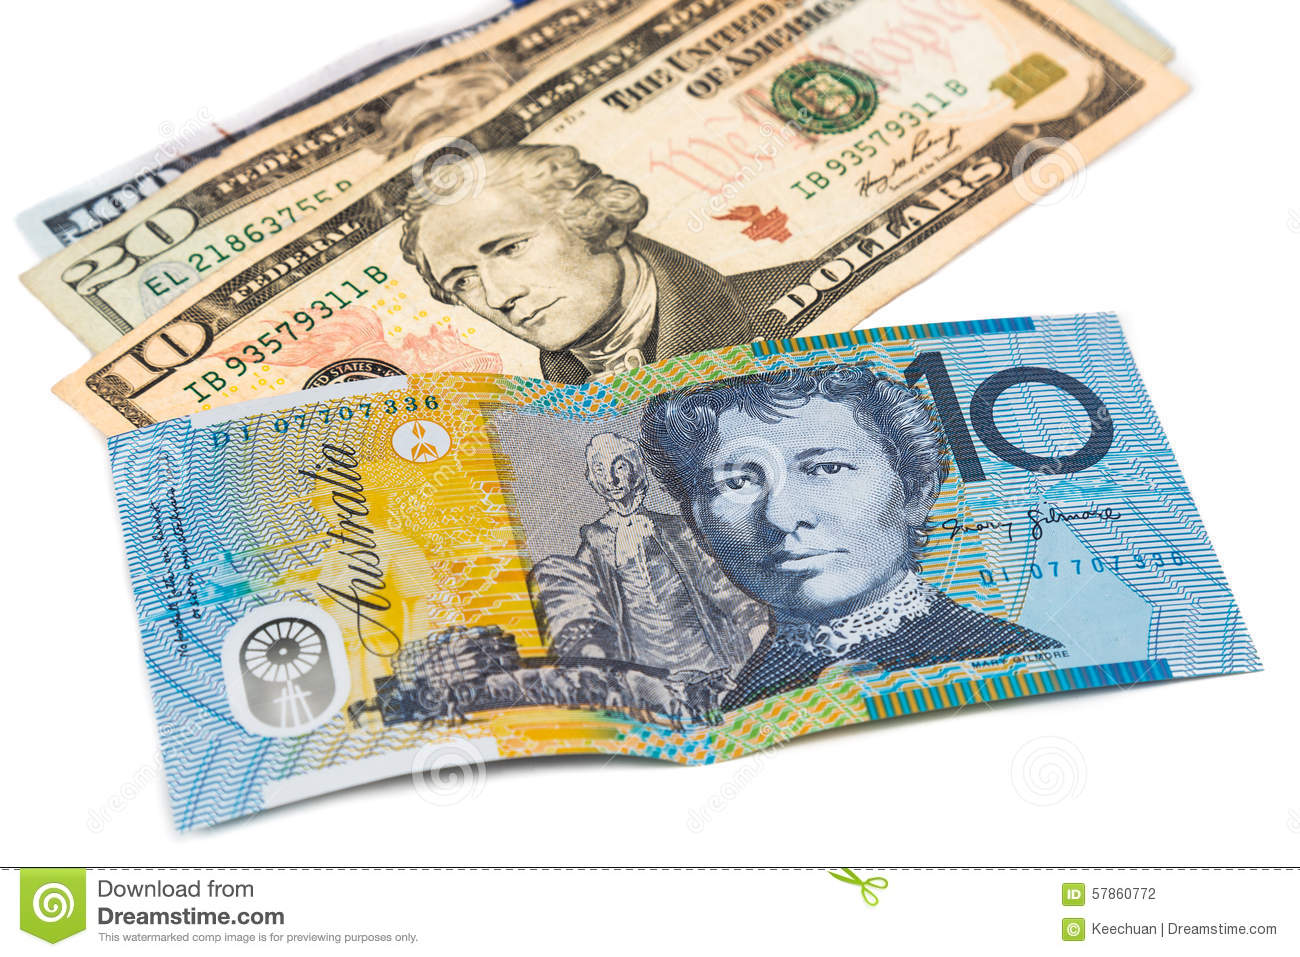 Close Up Of Australian Dollar Currency Note Against US Dollar Stock Photo - Image: 57860772